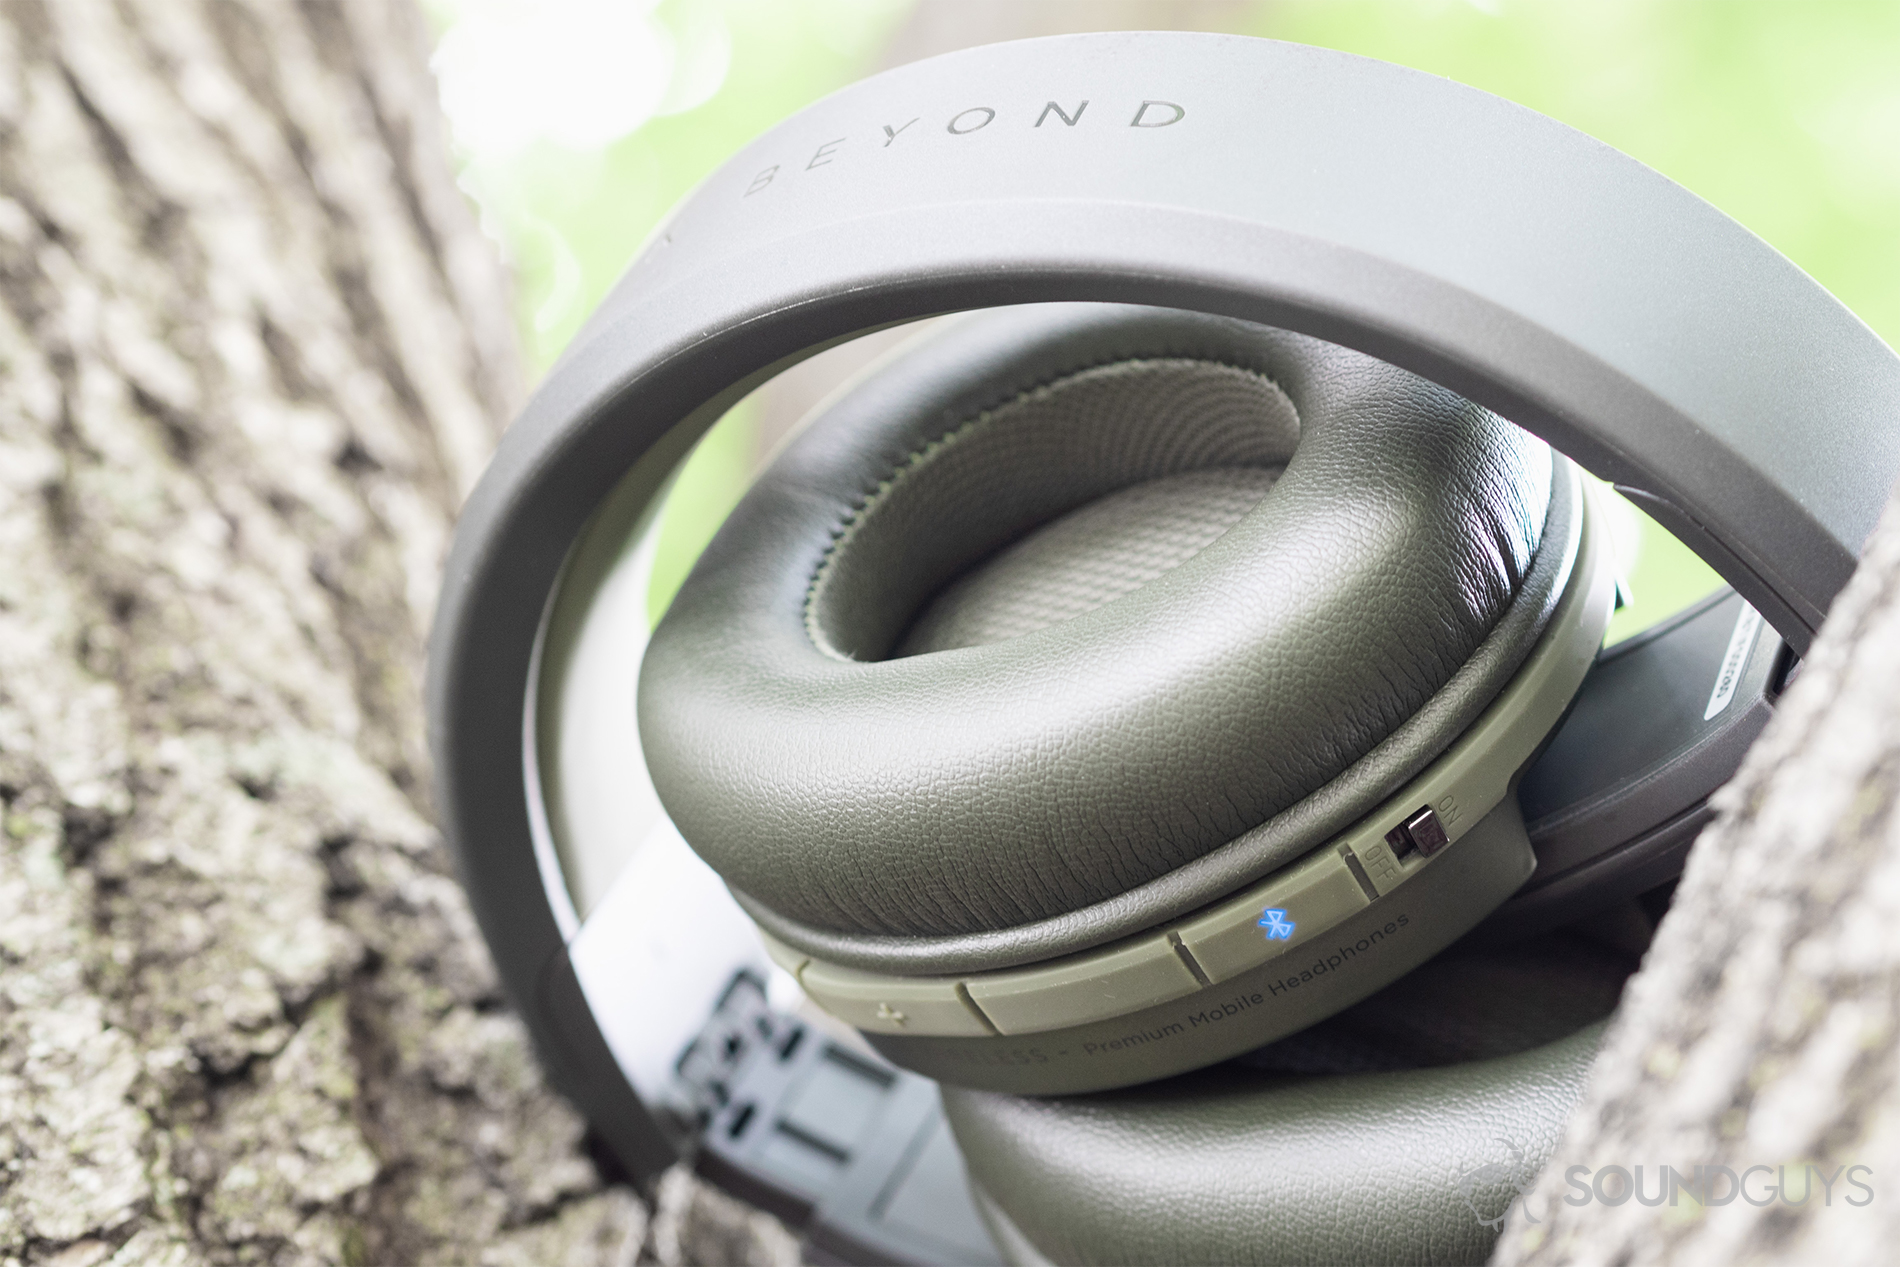 cb7a06d45b3 Focal Listen Wireless review: An underside view of the headphones (olive)  which are. Equipped with Bluetooth ...